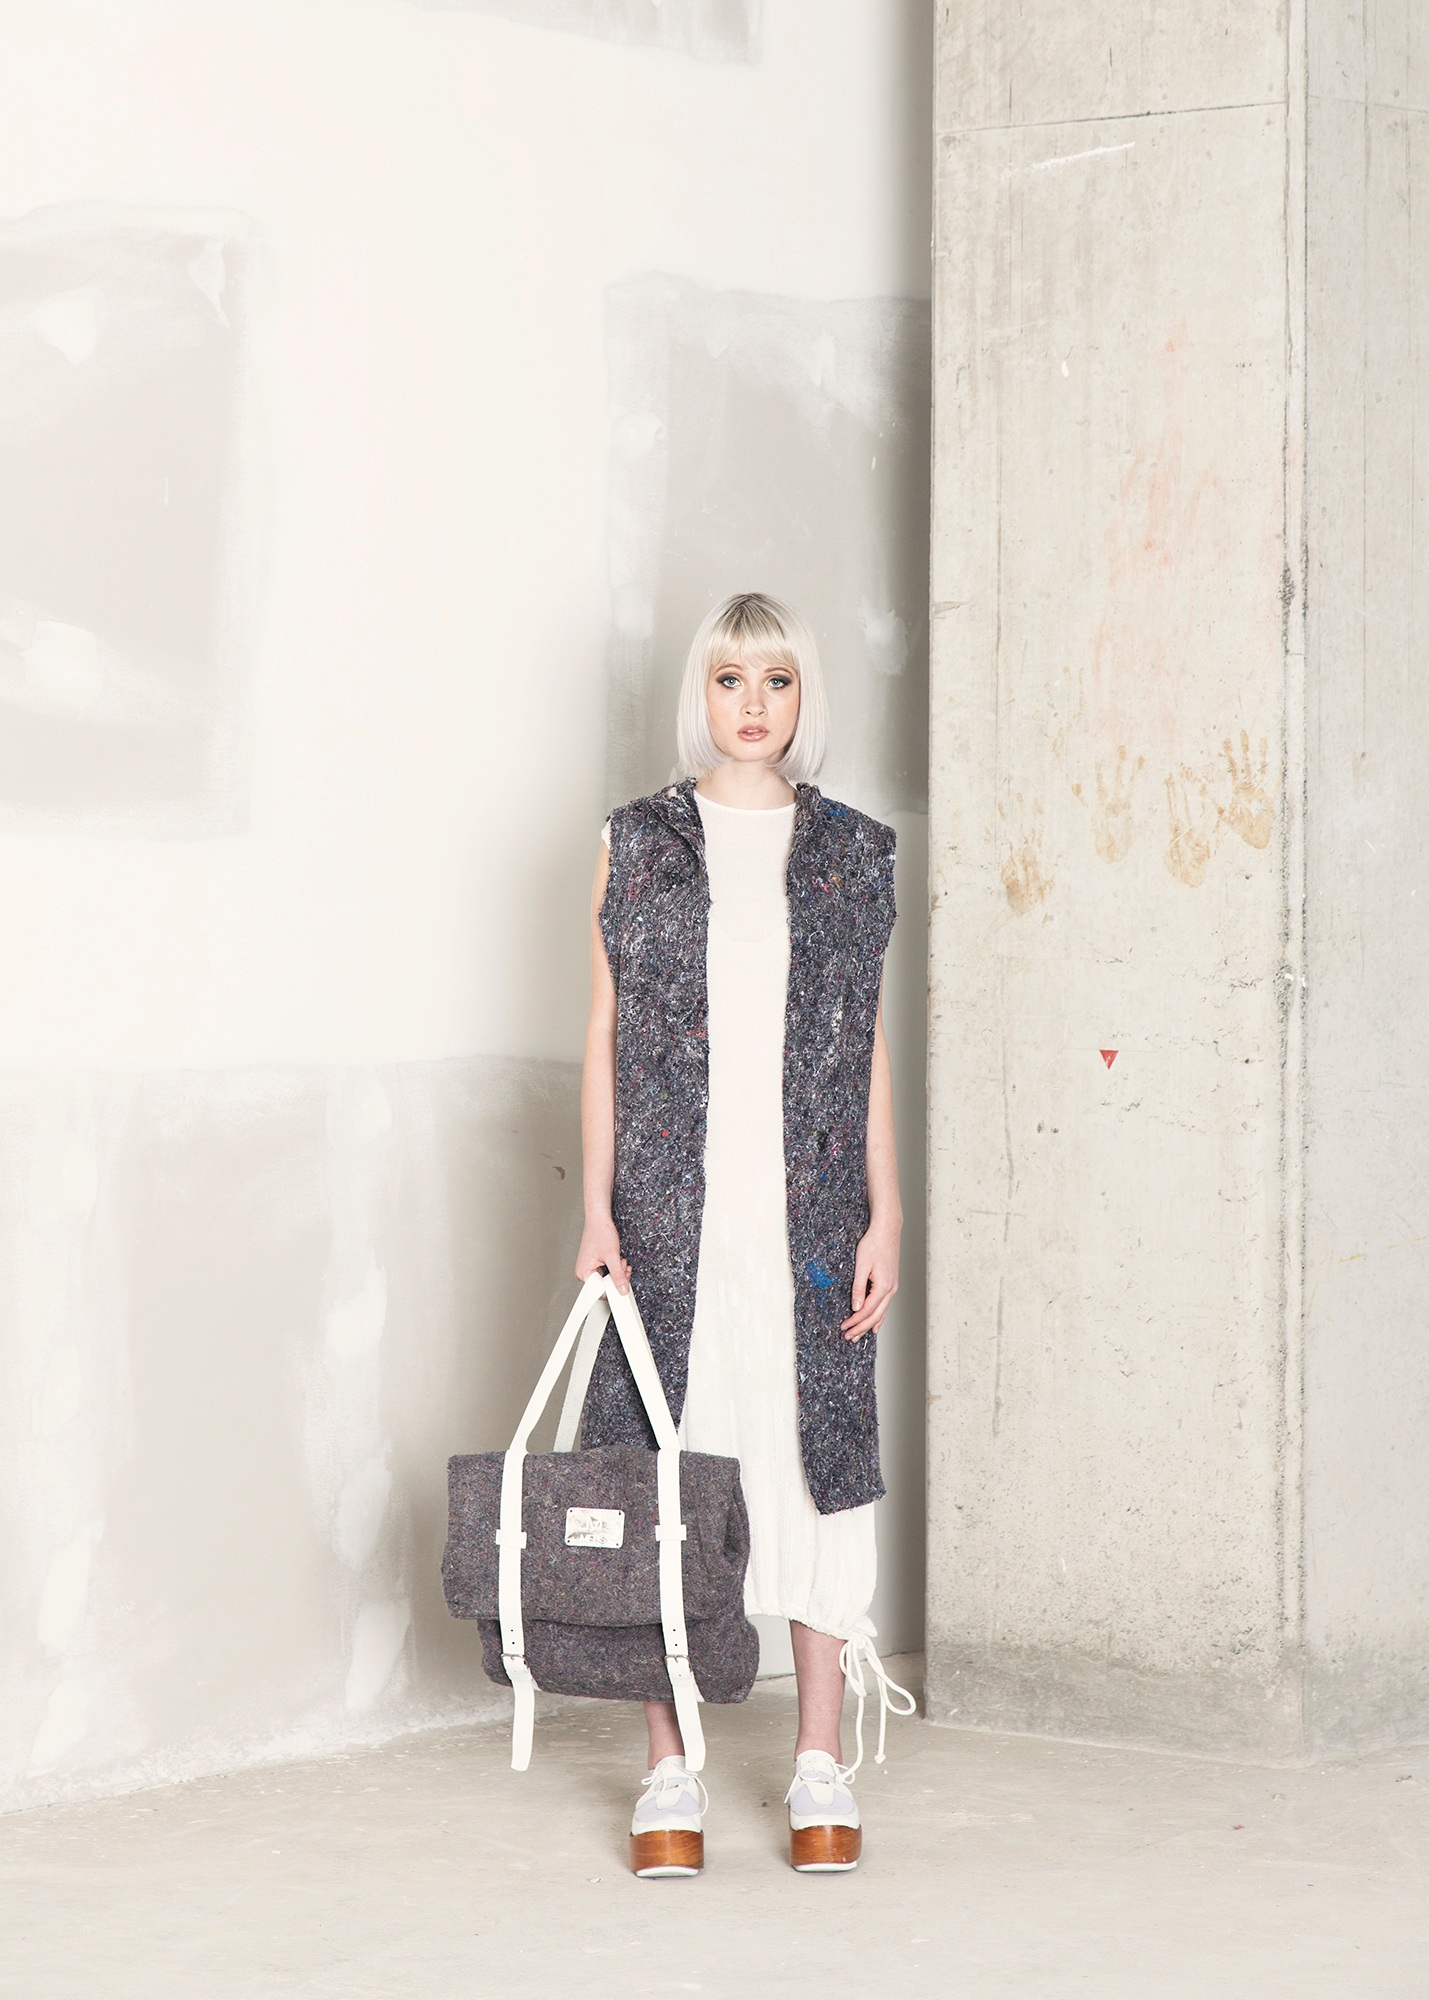 Per Materia  Recycled fibers  Backpack  SOLD OUT